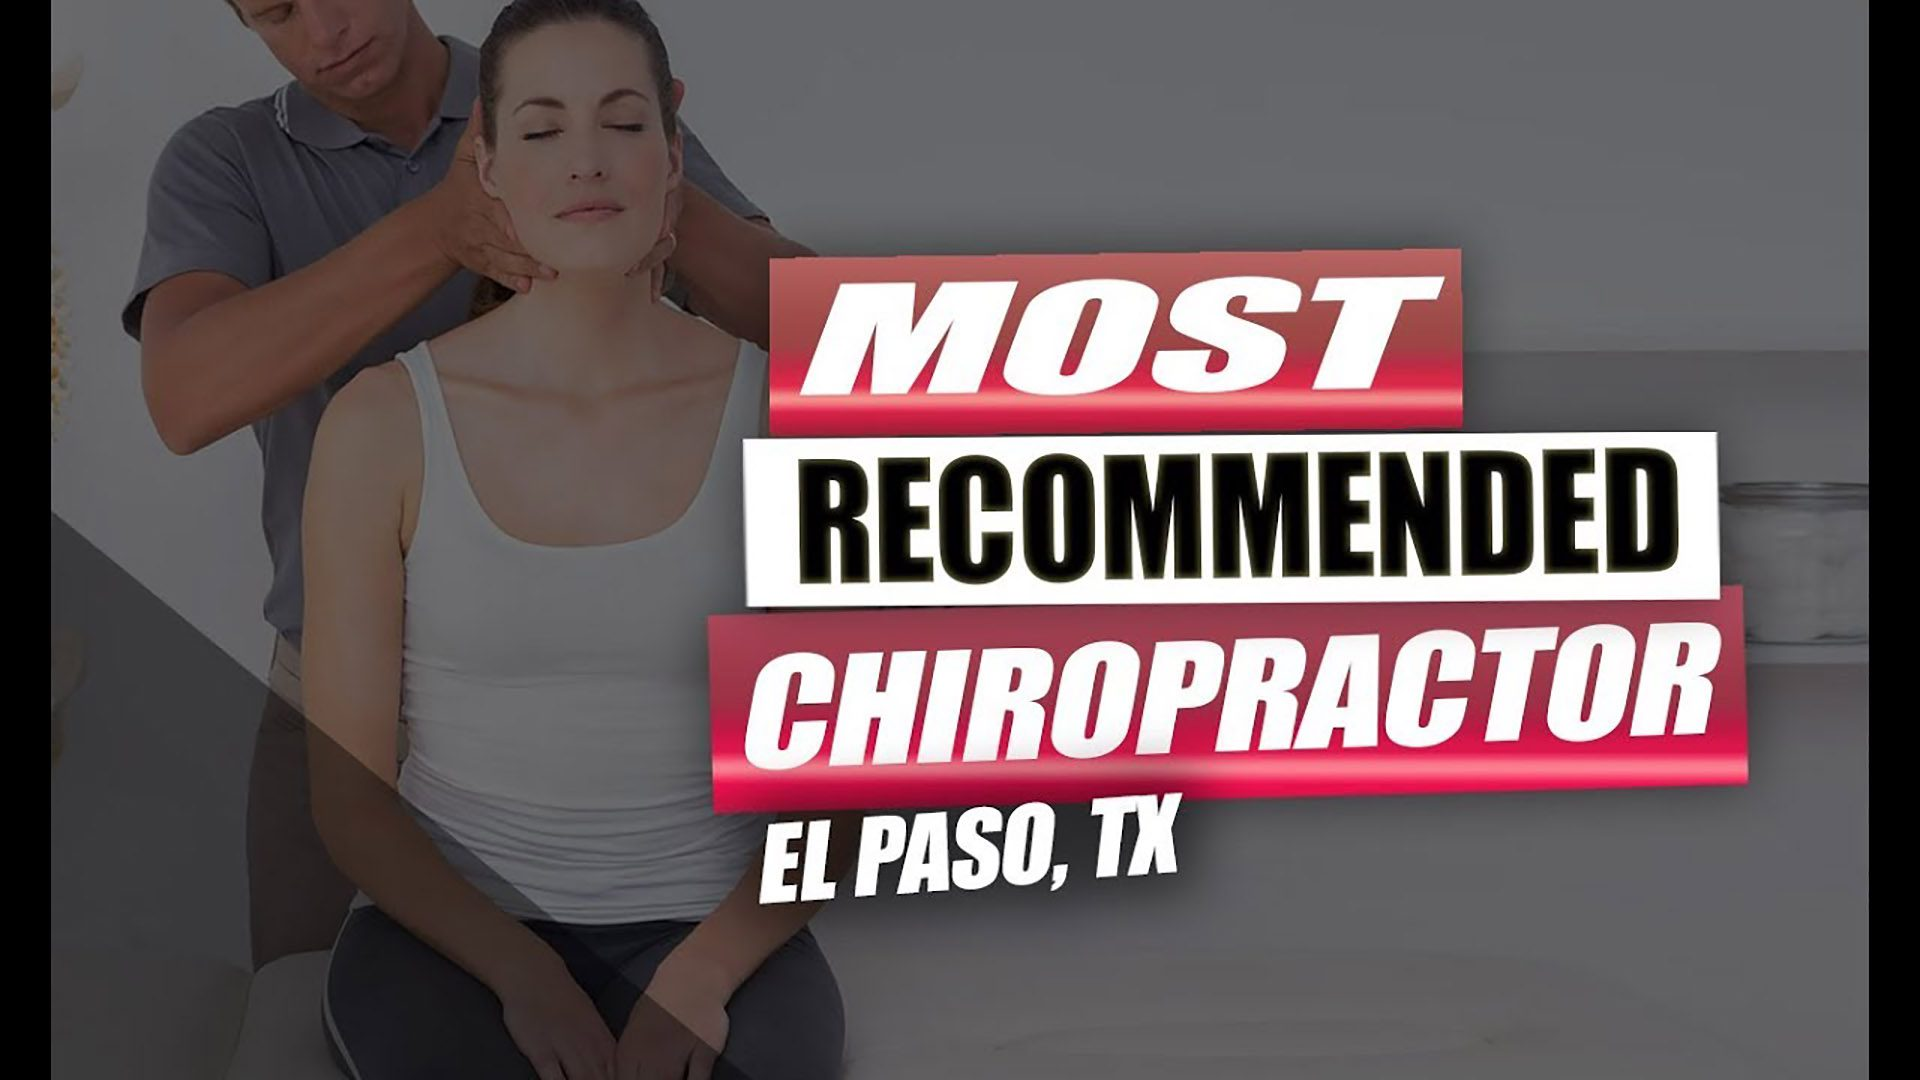 most effective chiropractor el paso tx.